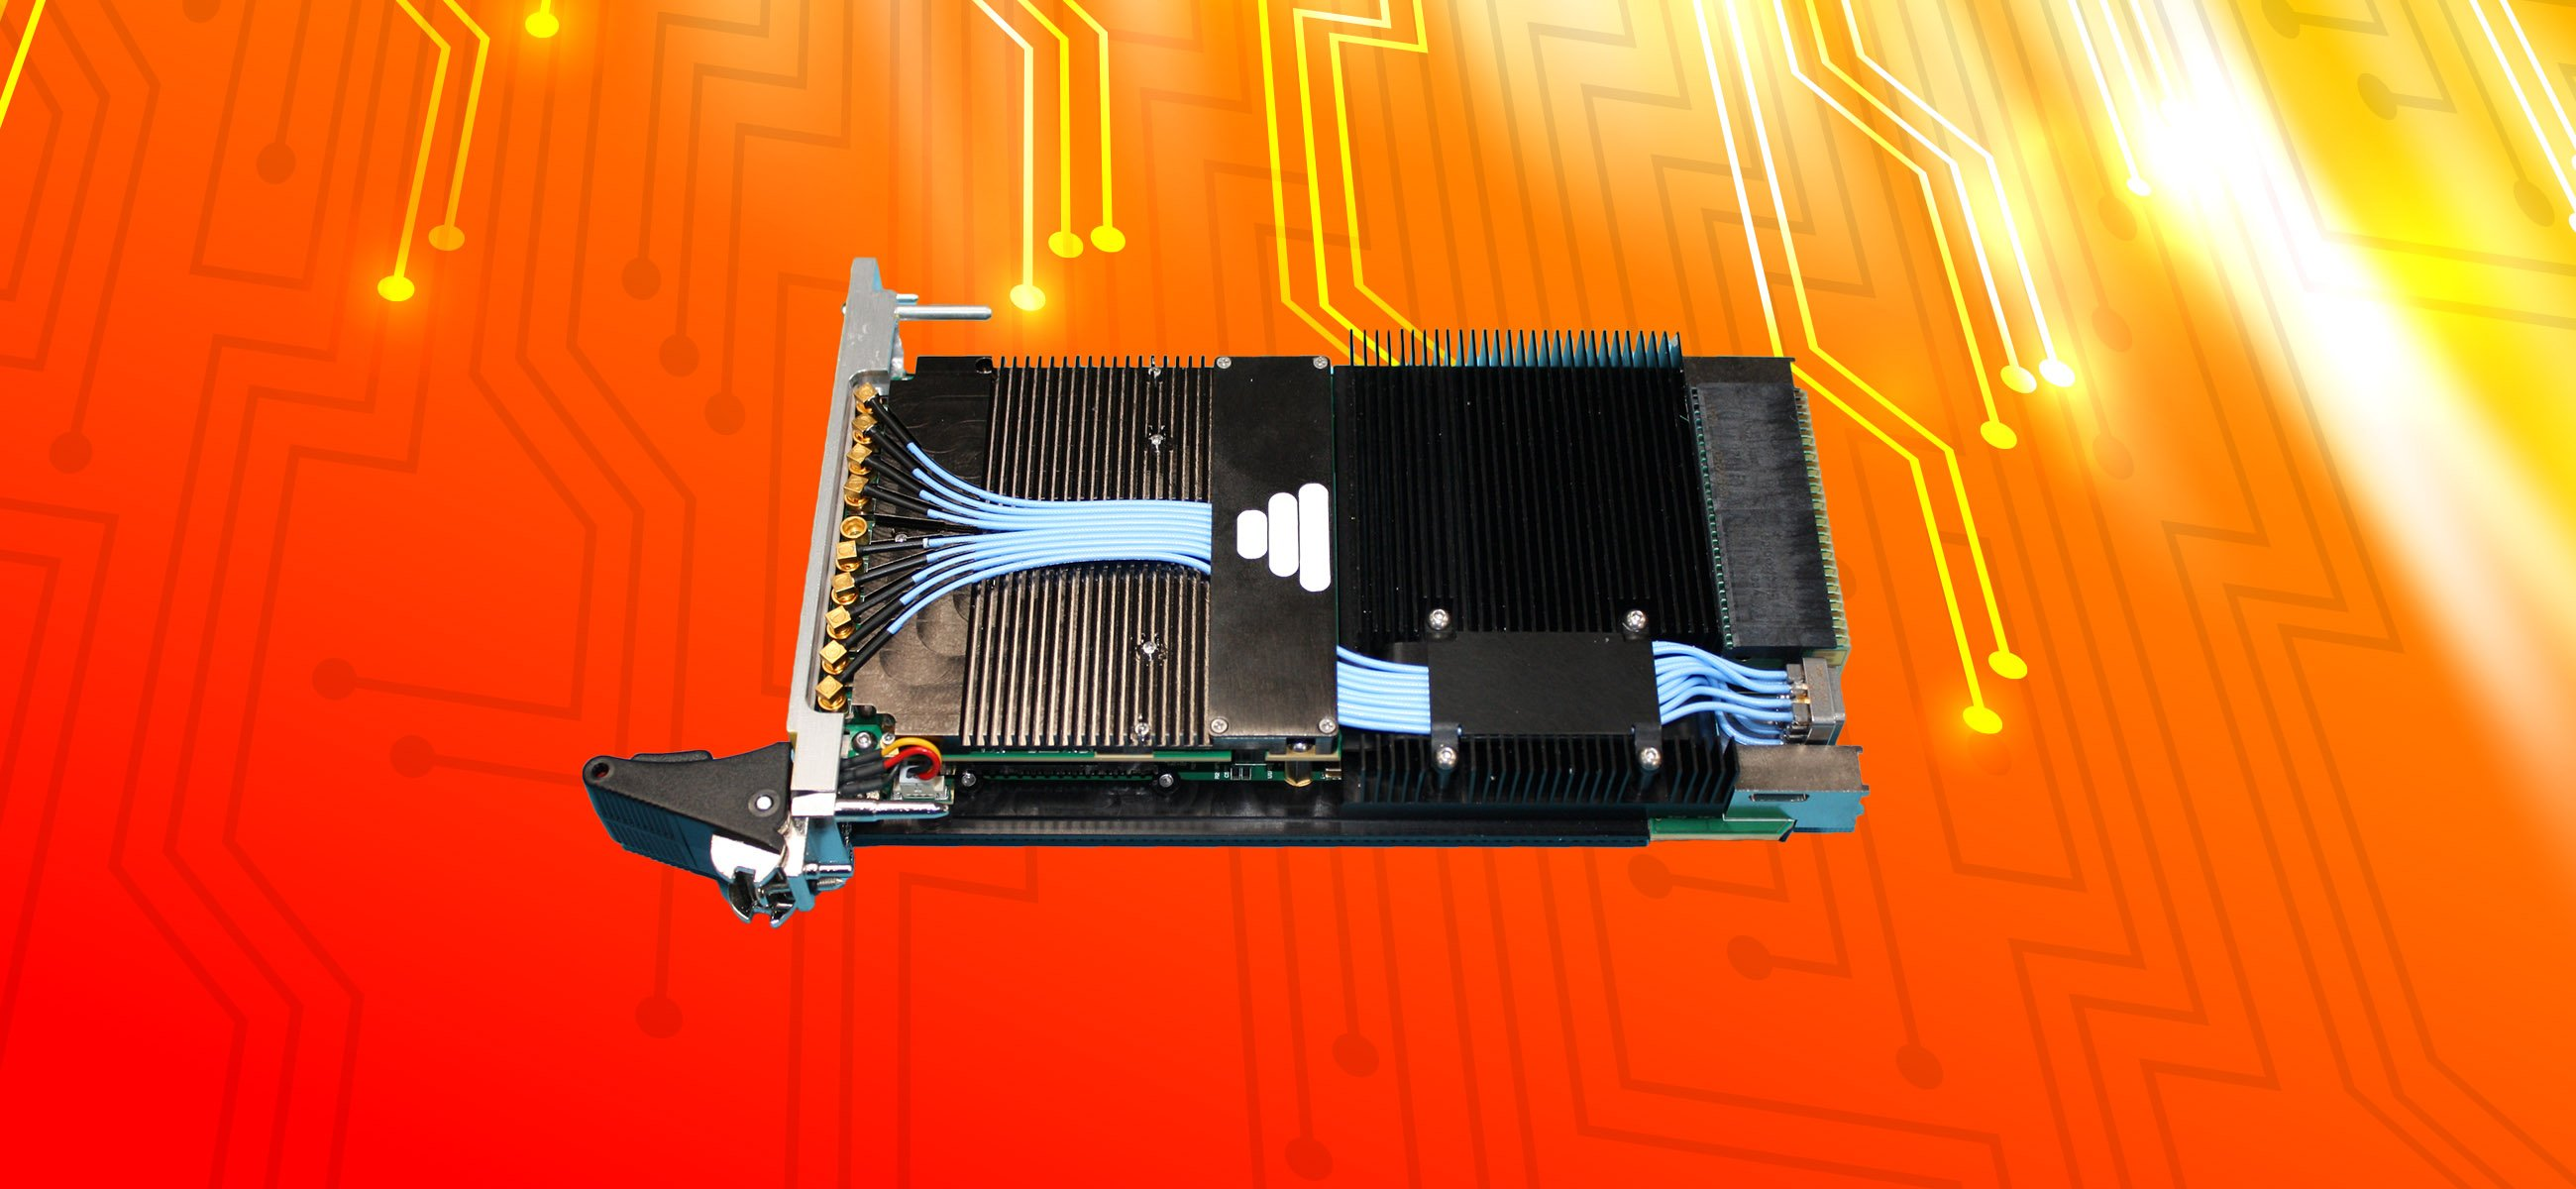 FPGA-Based Rugged Embedded Boards & Systems for HPC & DSP